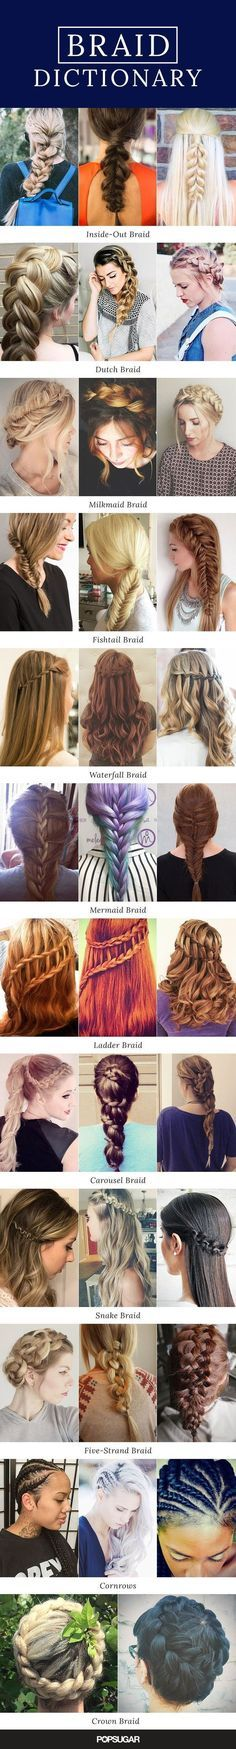 There are so many different braids out there — how many can you create? Everyone wants to master the new trendy style before a new one is invented. So, weve broken down every kind of plait (with gorgeous real-girl pictures and tutorials) for hairstyle inspiration. See photos of inside-out braids, dutch braids, milkmaid braids, fishtail braids, waterfall braids, mermaid braids, ladder braids, carousel braids, snake braids, five-strand braids, cornrows, and crown braids.